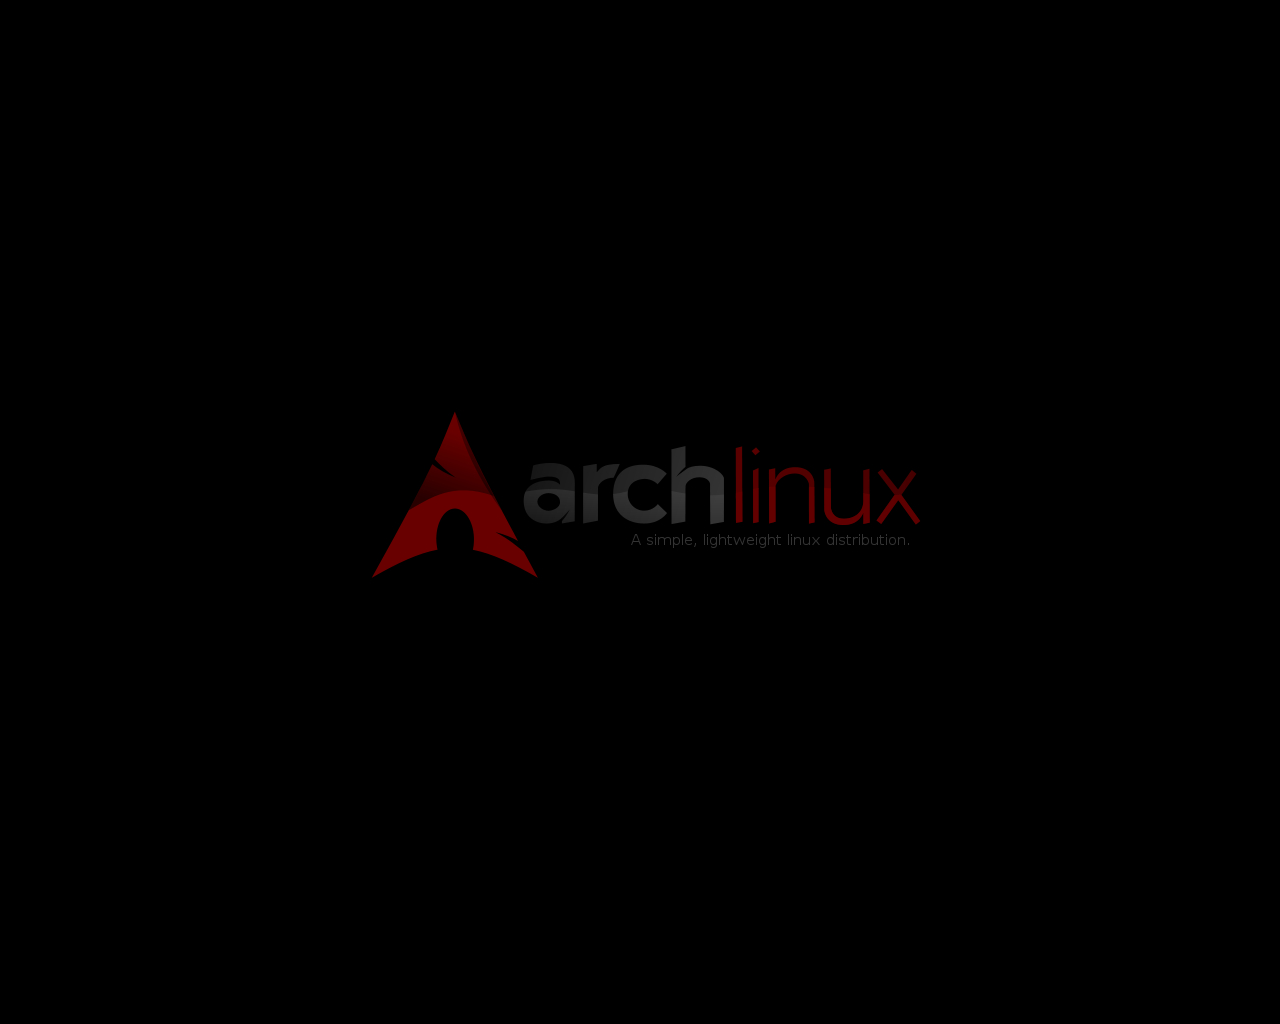 Archlinux_wallpaper_-_red by platinummonkey